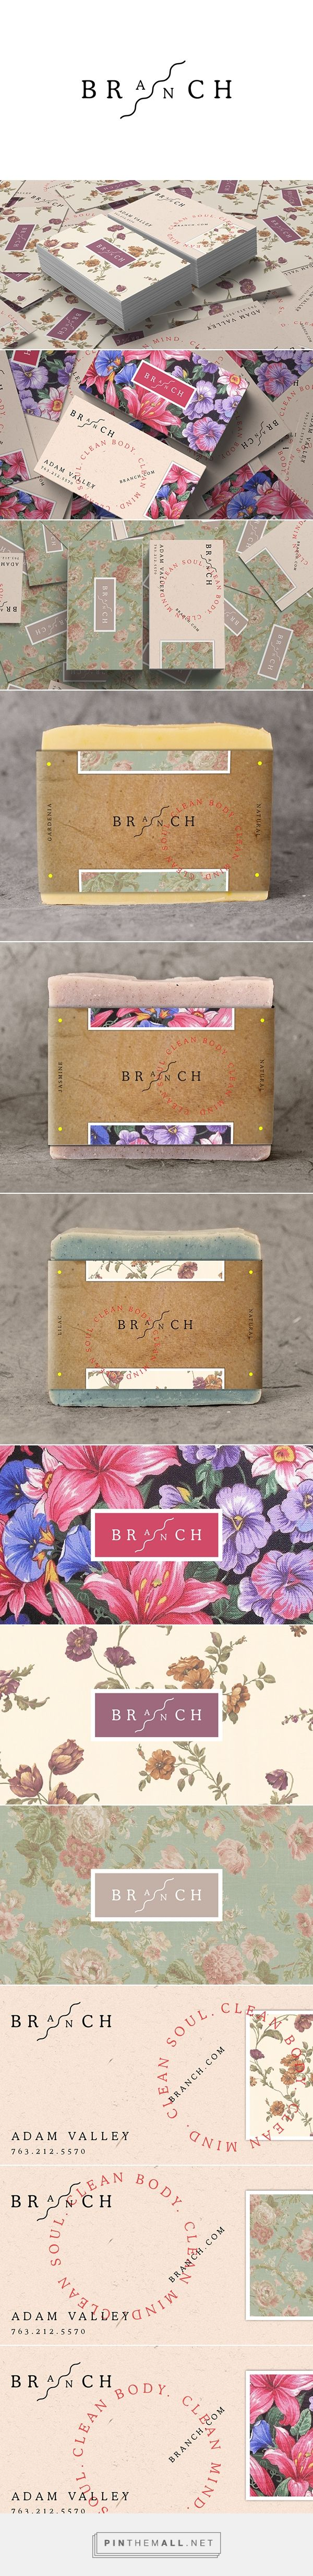 Branch Soap Fivestar Branding design logo packaging